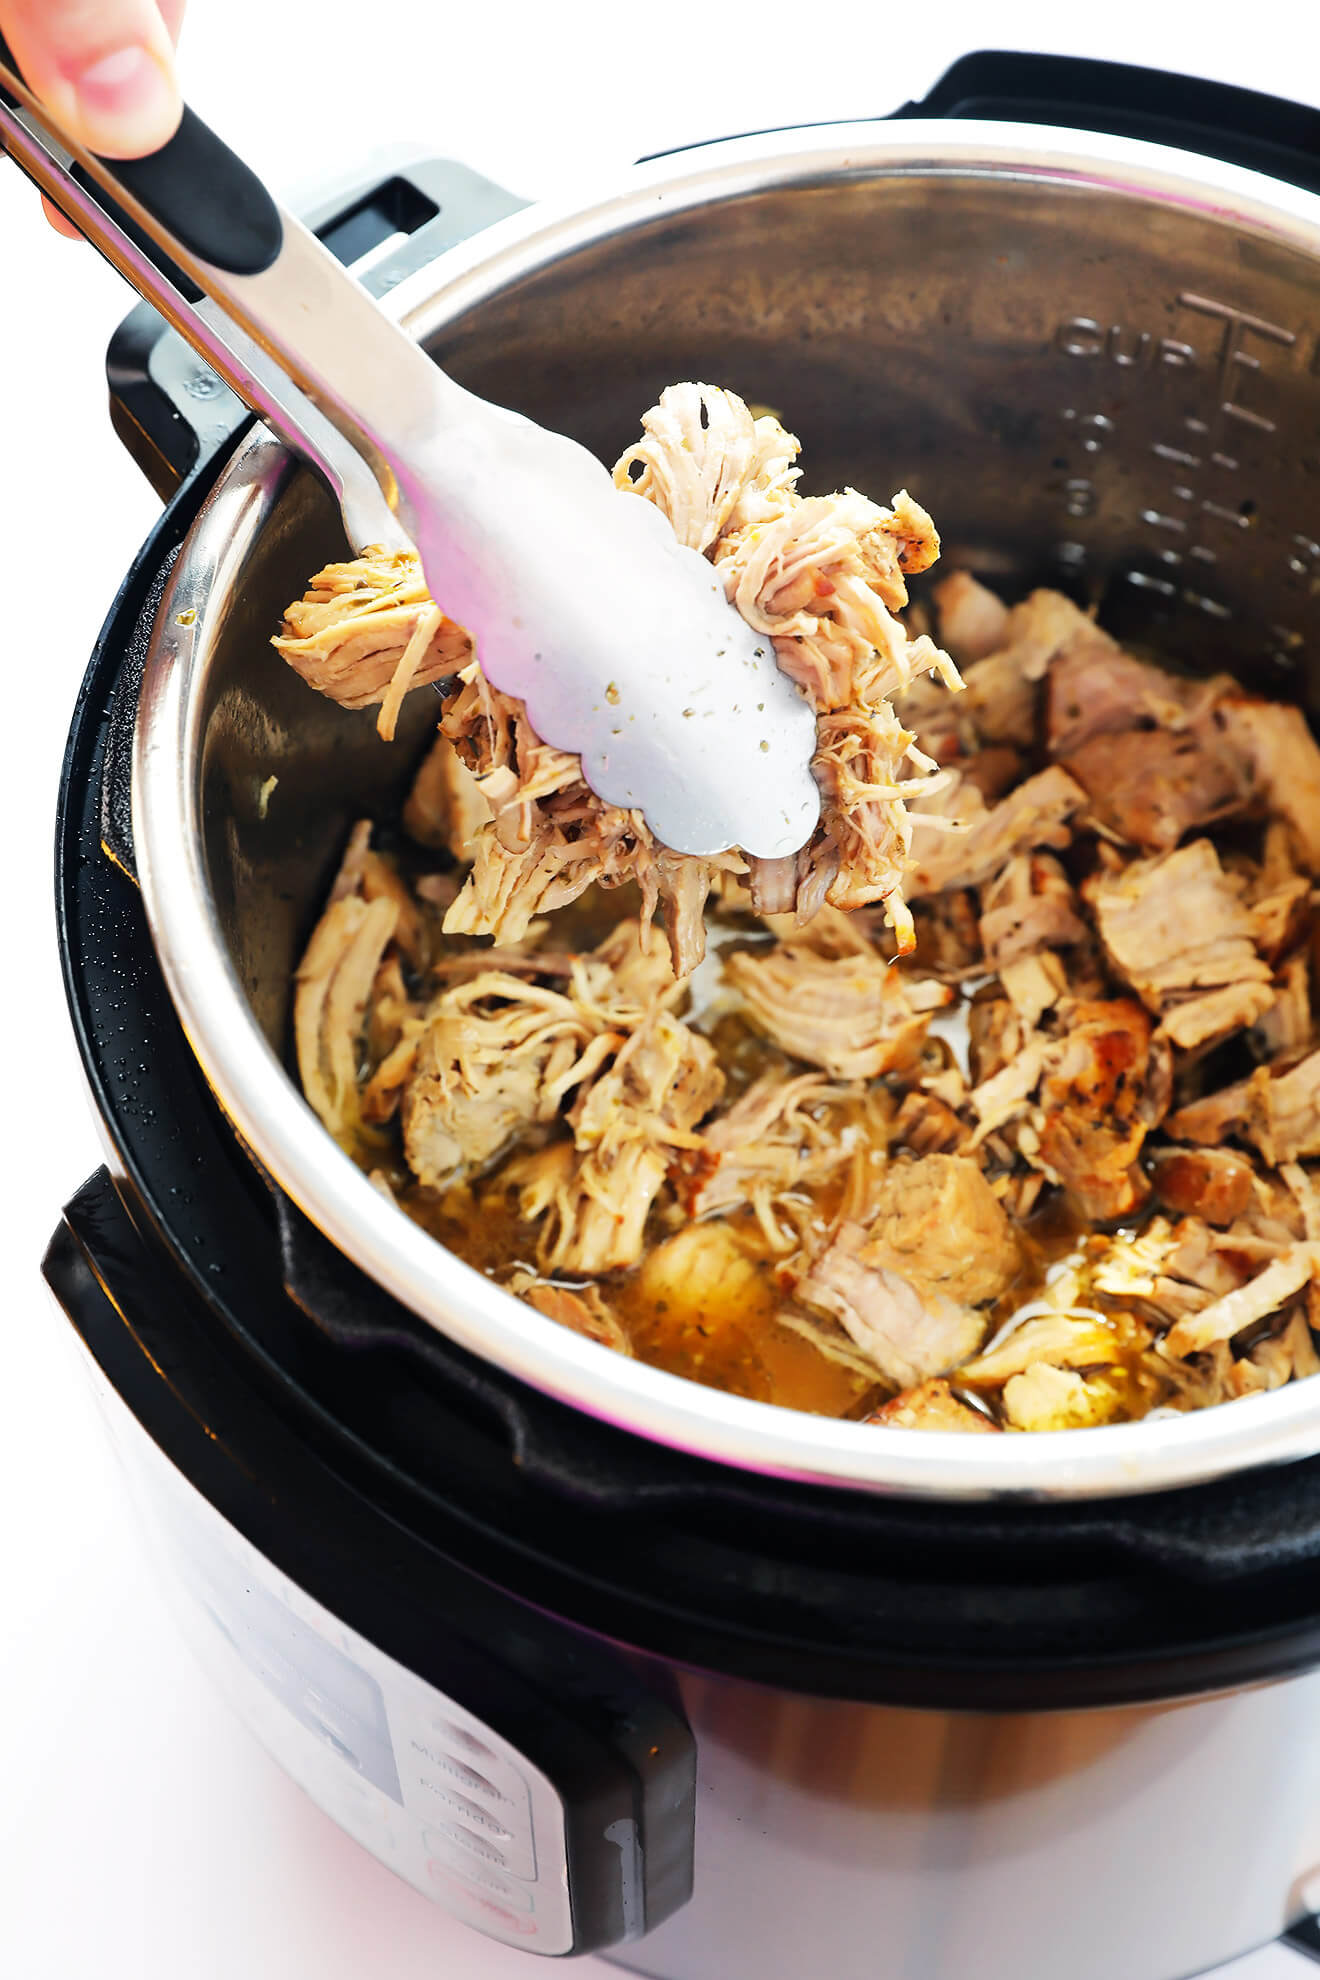 Crispy Pork Carnitas are so easy to make in the Instant Pot! Check out this delicious recipe, marinade with a citrus garlic Cuban mojo sauce. | gimmesomeoven.com